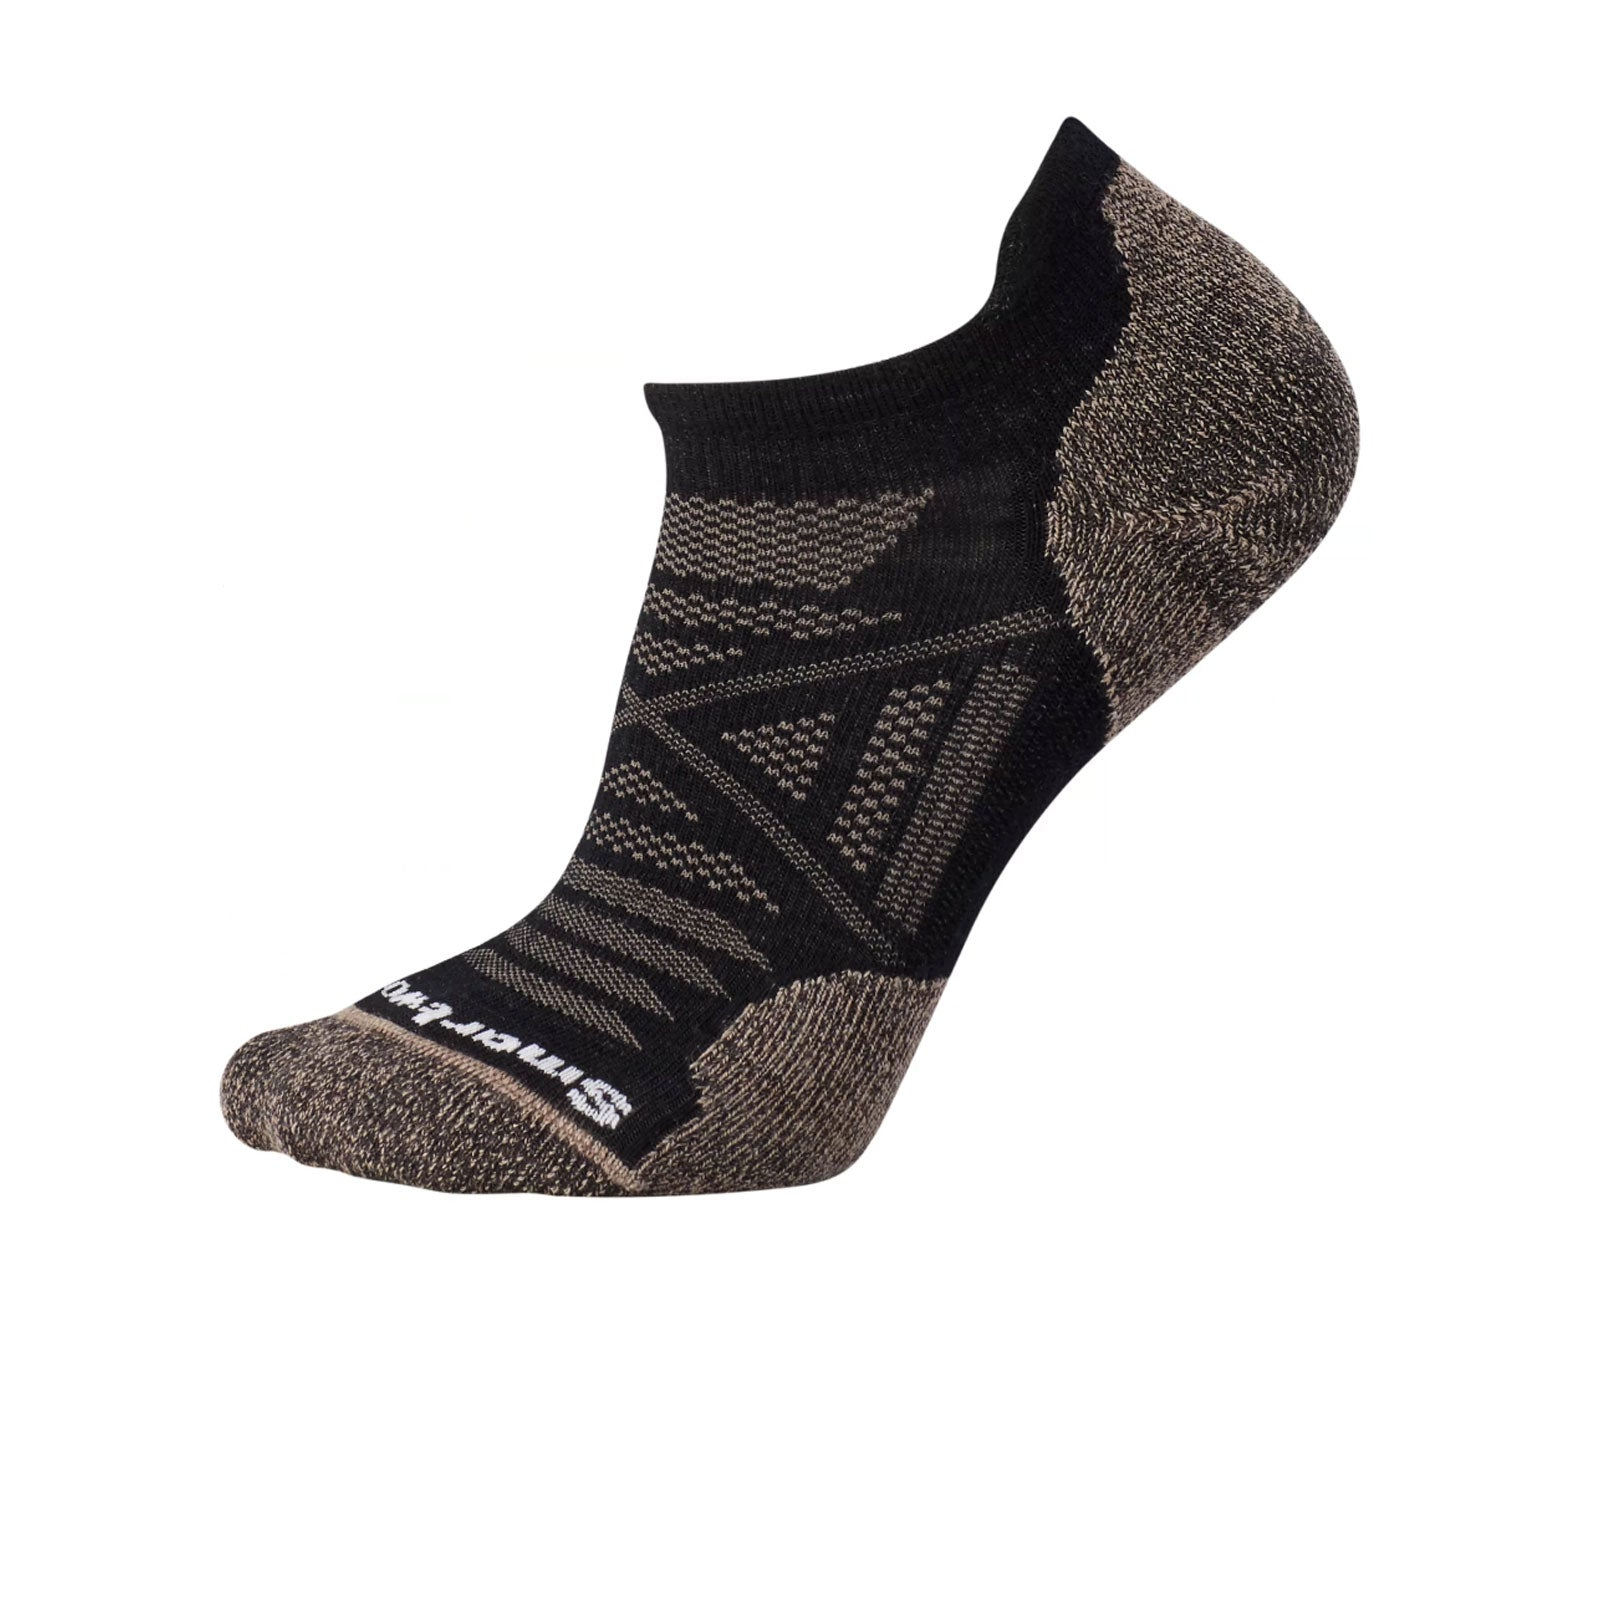 Smartwool PhD Outdoor Light Micro (Men) - Black Socks|Perf - Micro - The Heel Shoe Fitters